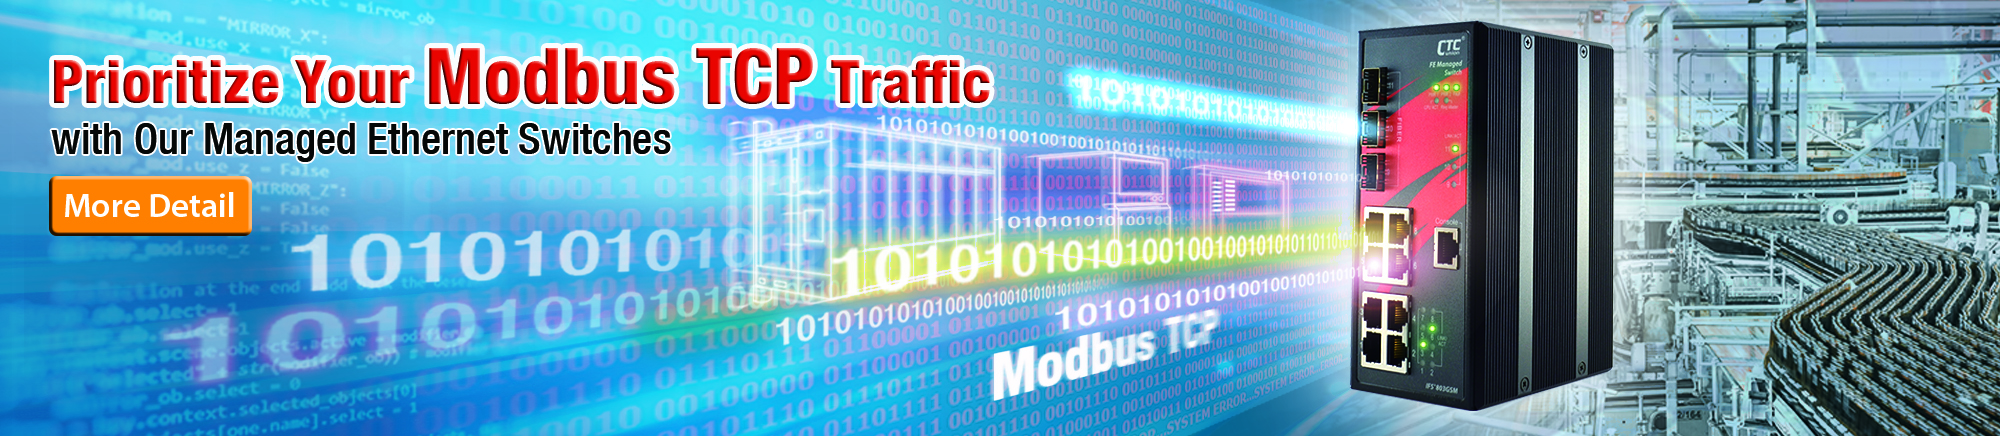 Modbus TCP Traffic